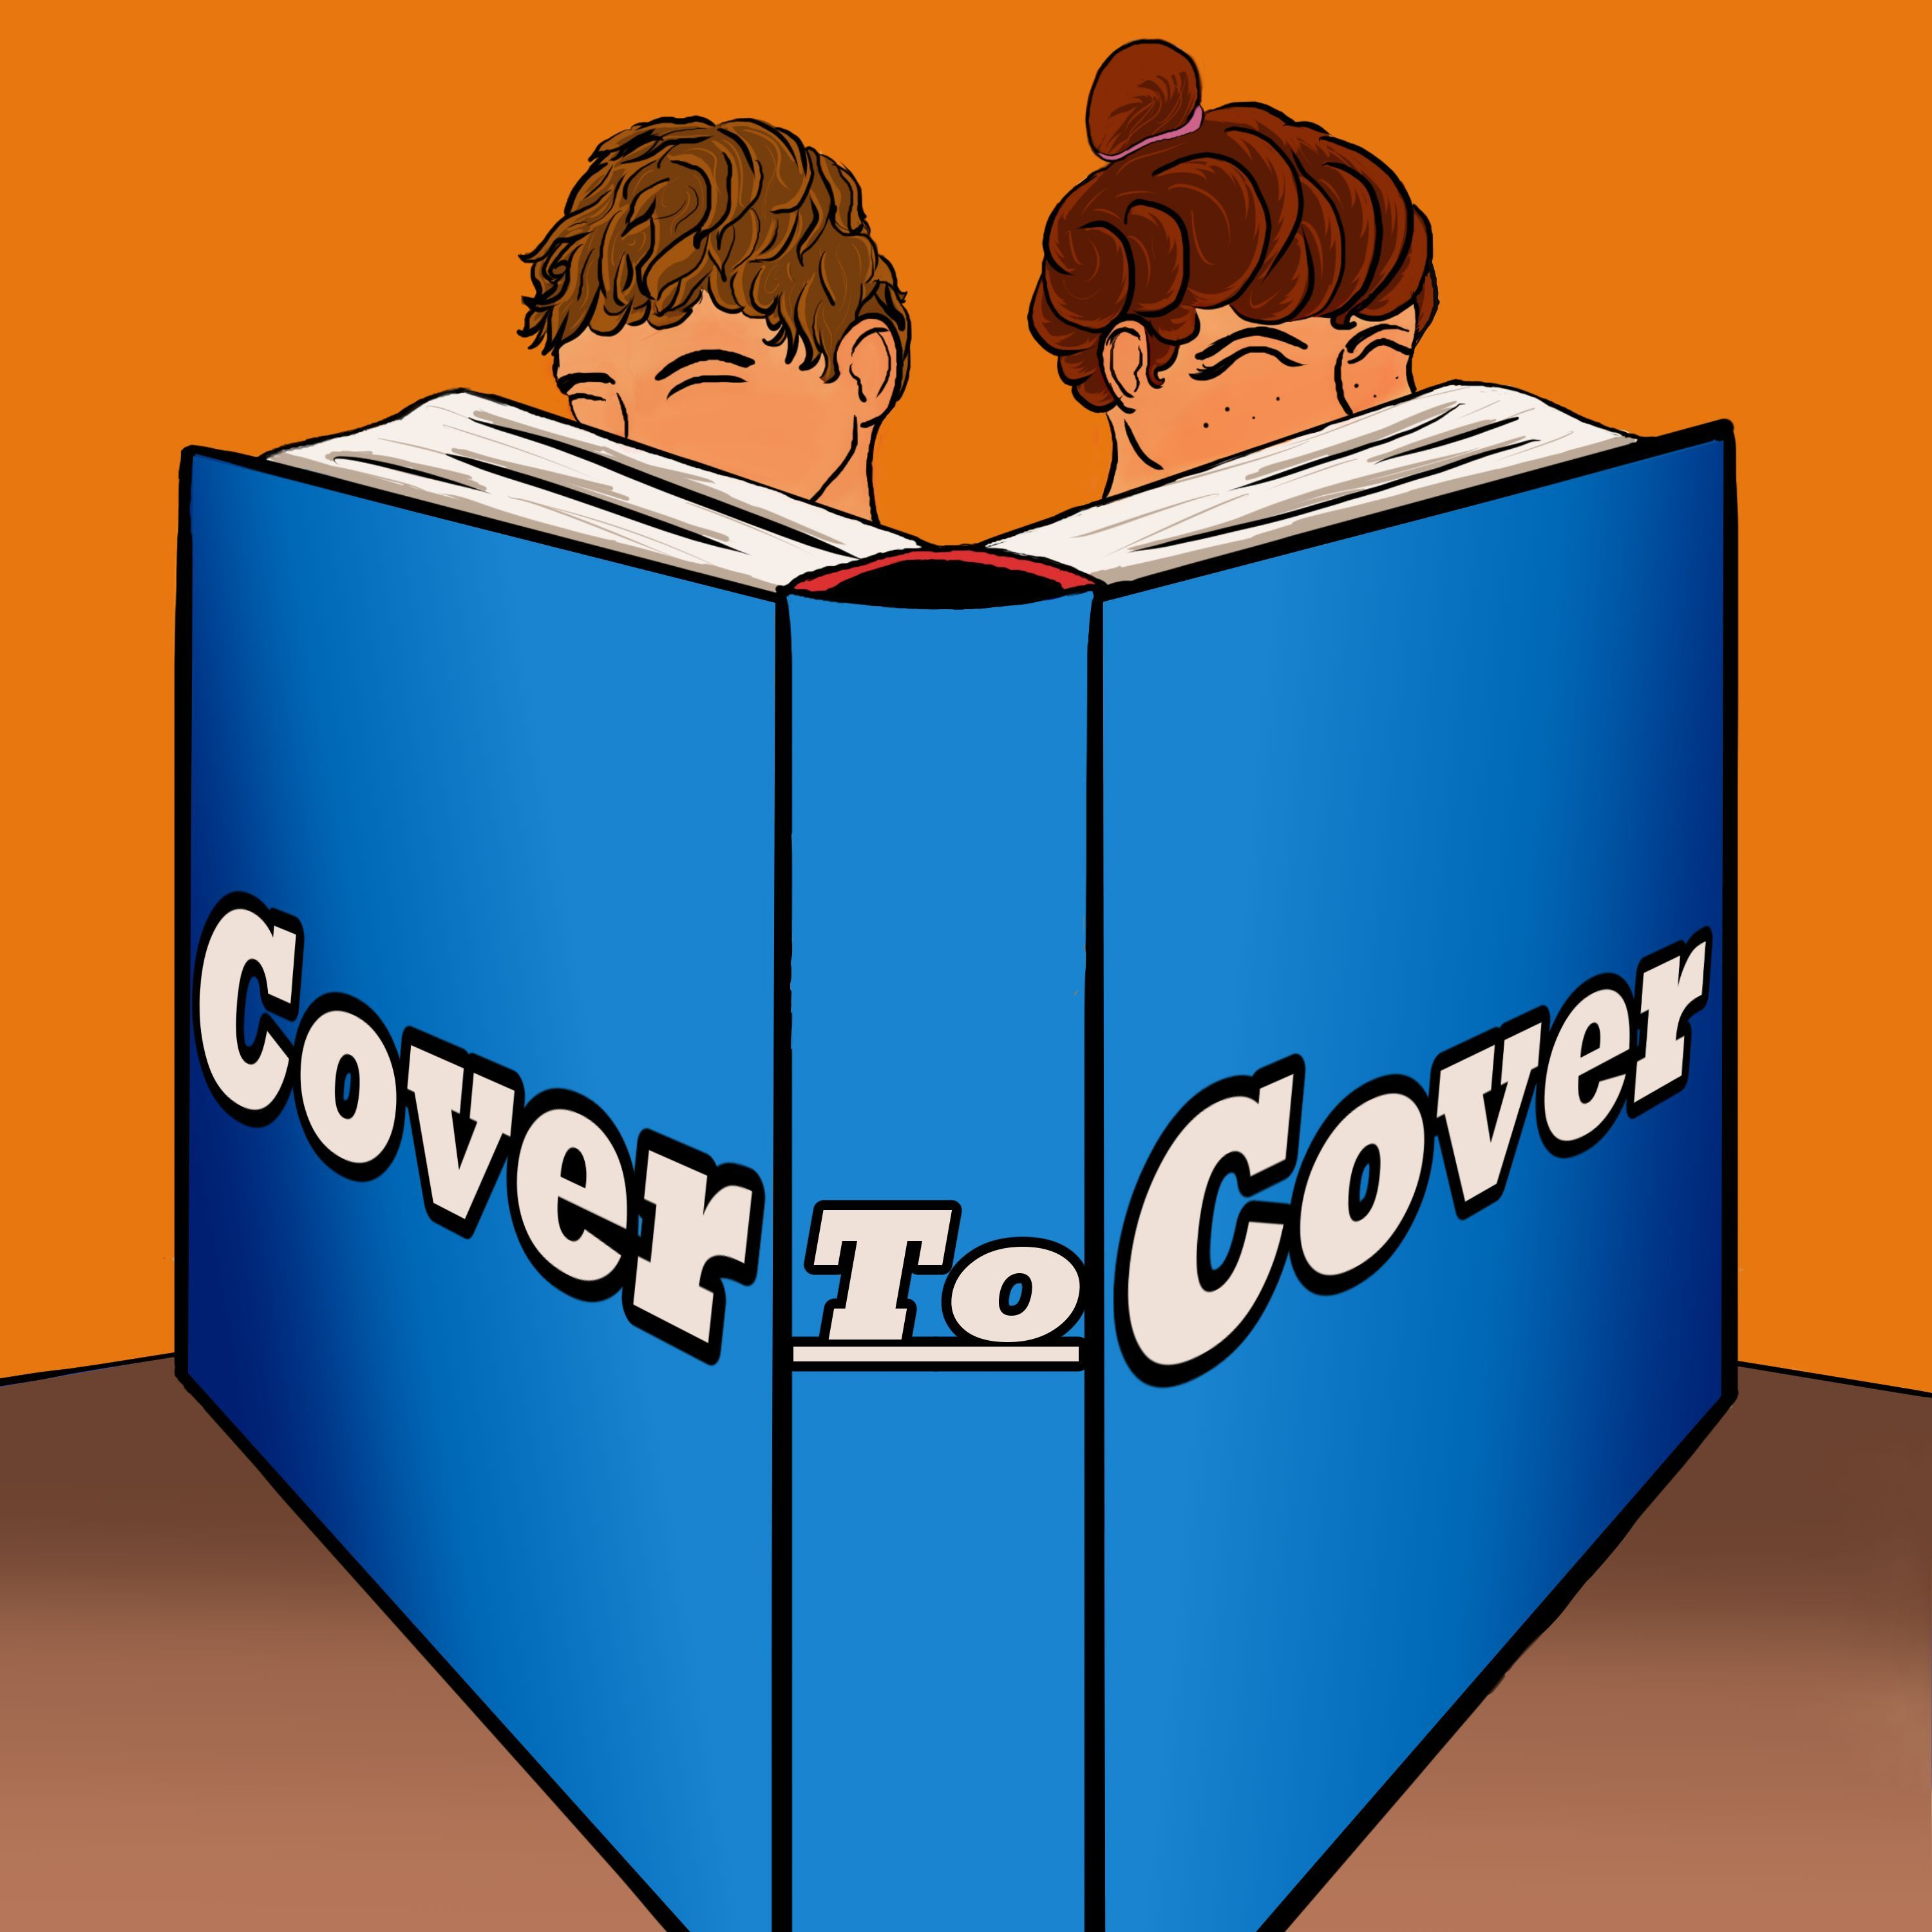 Cover to Cover: Percy Jackson by Rick Riordan